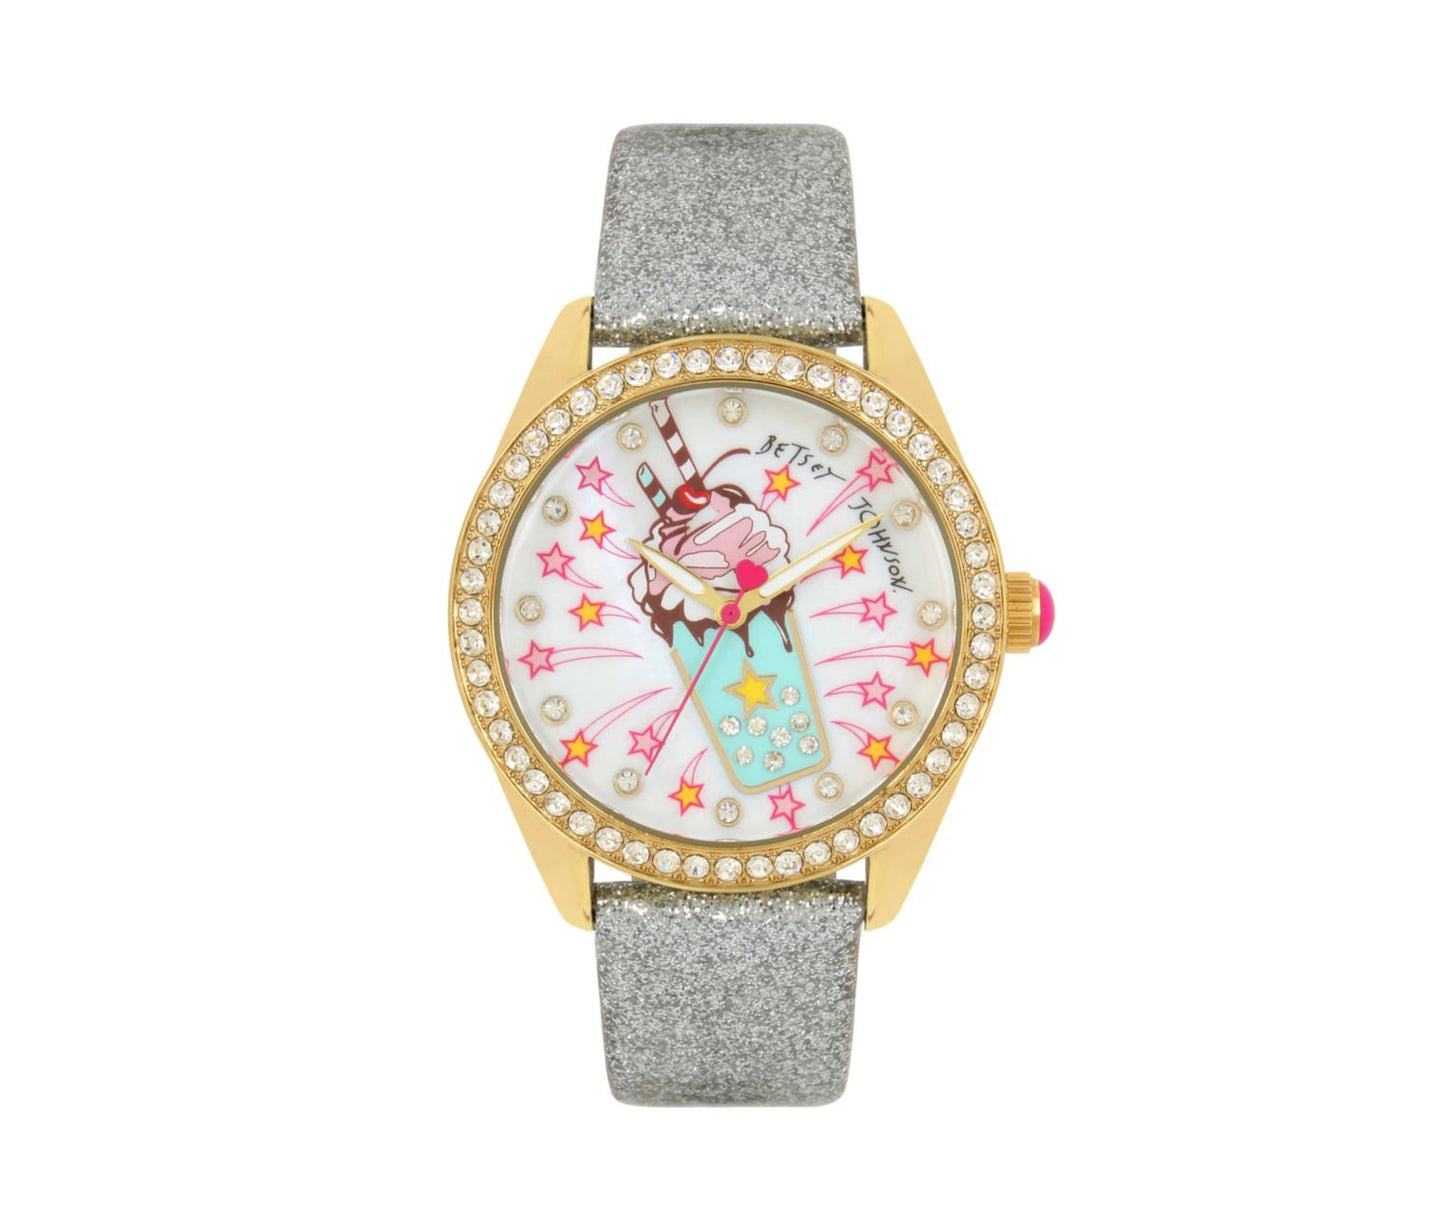 DINER TIME SHAKE IT UP WATCH BLACK - JEWELRY - Betsey Johnson